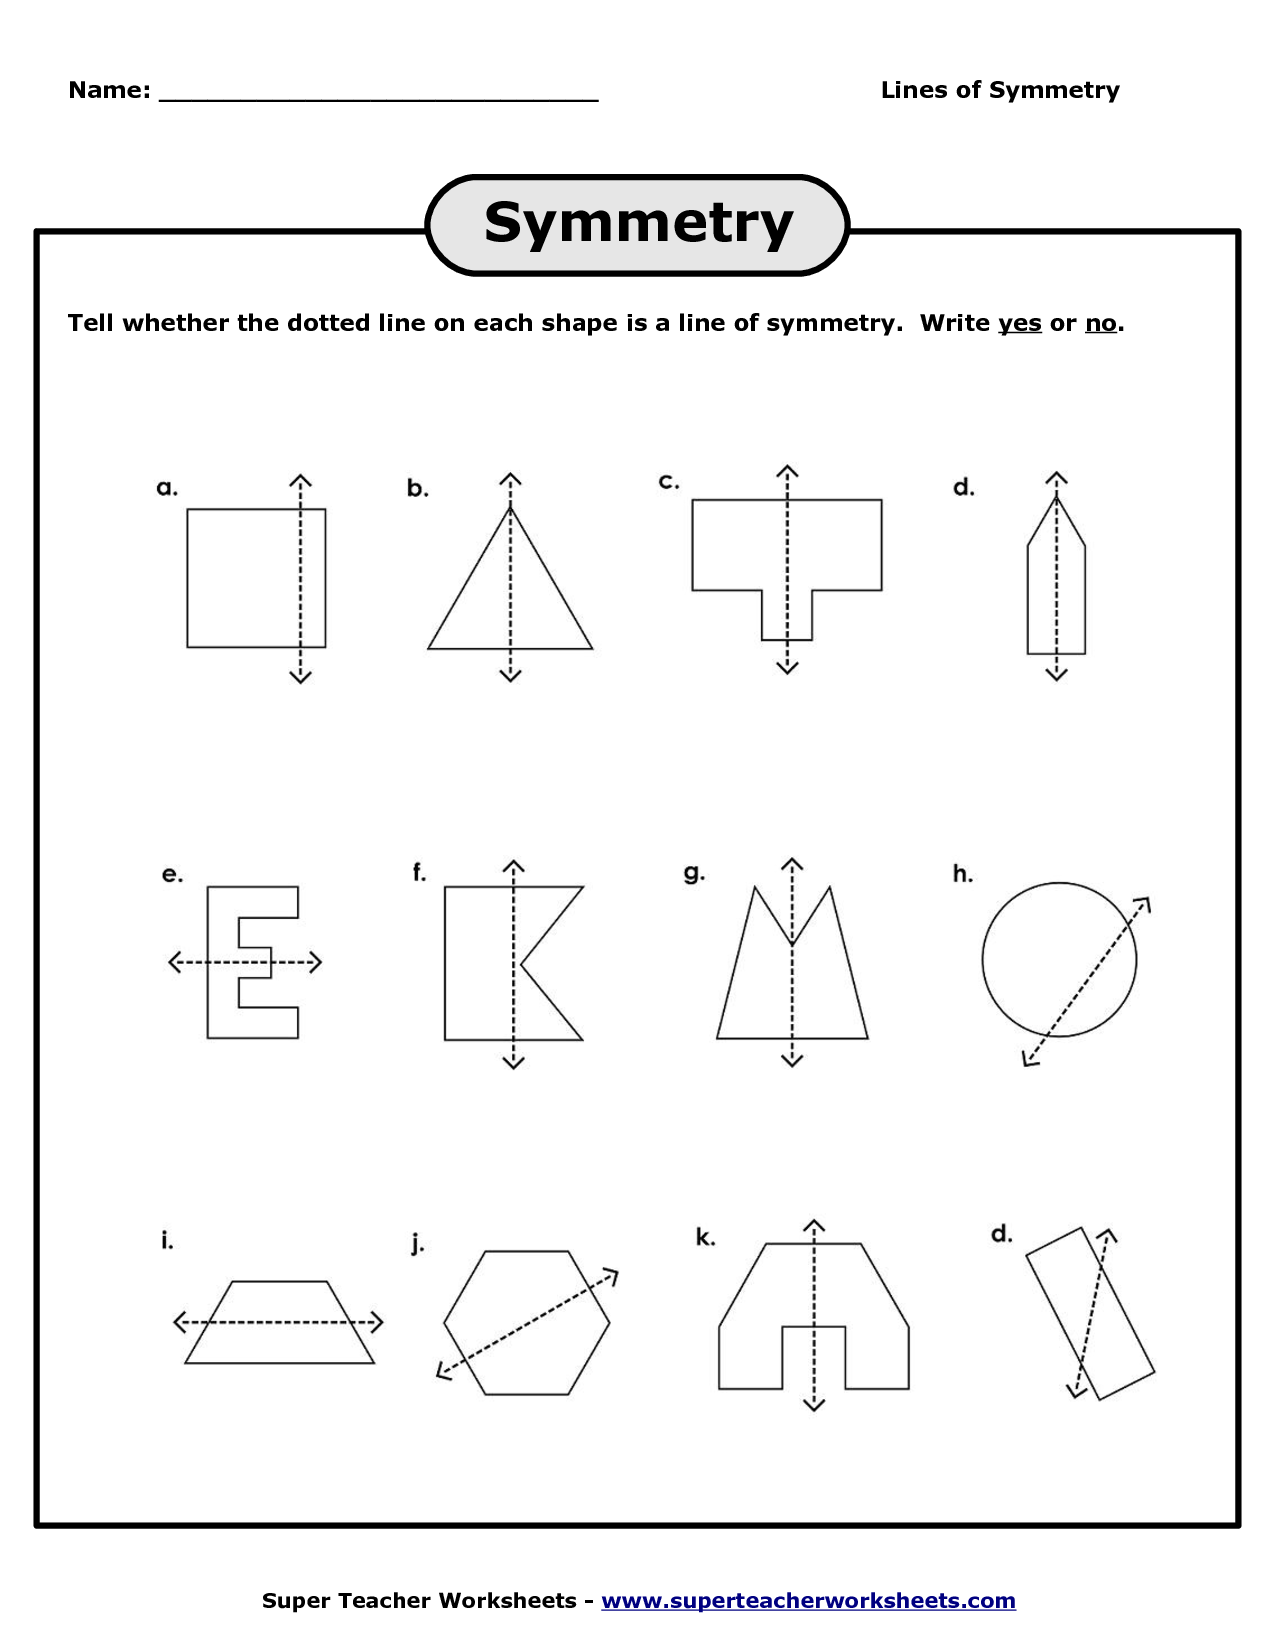 Line Symmetry Worksheets